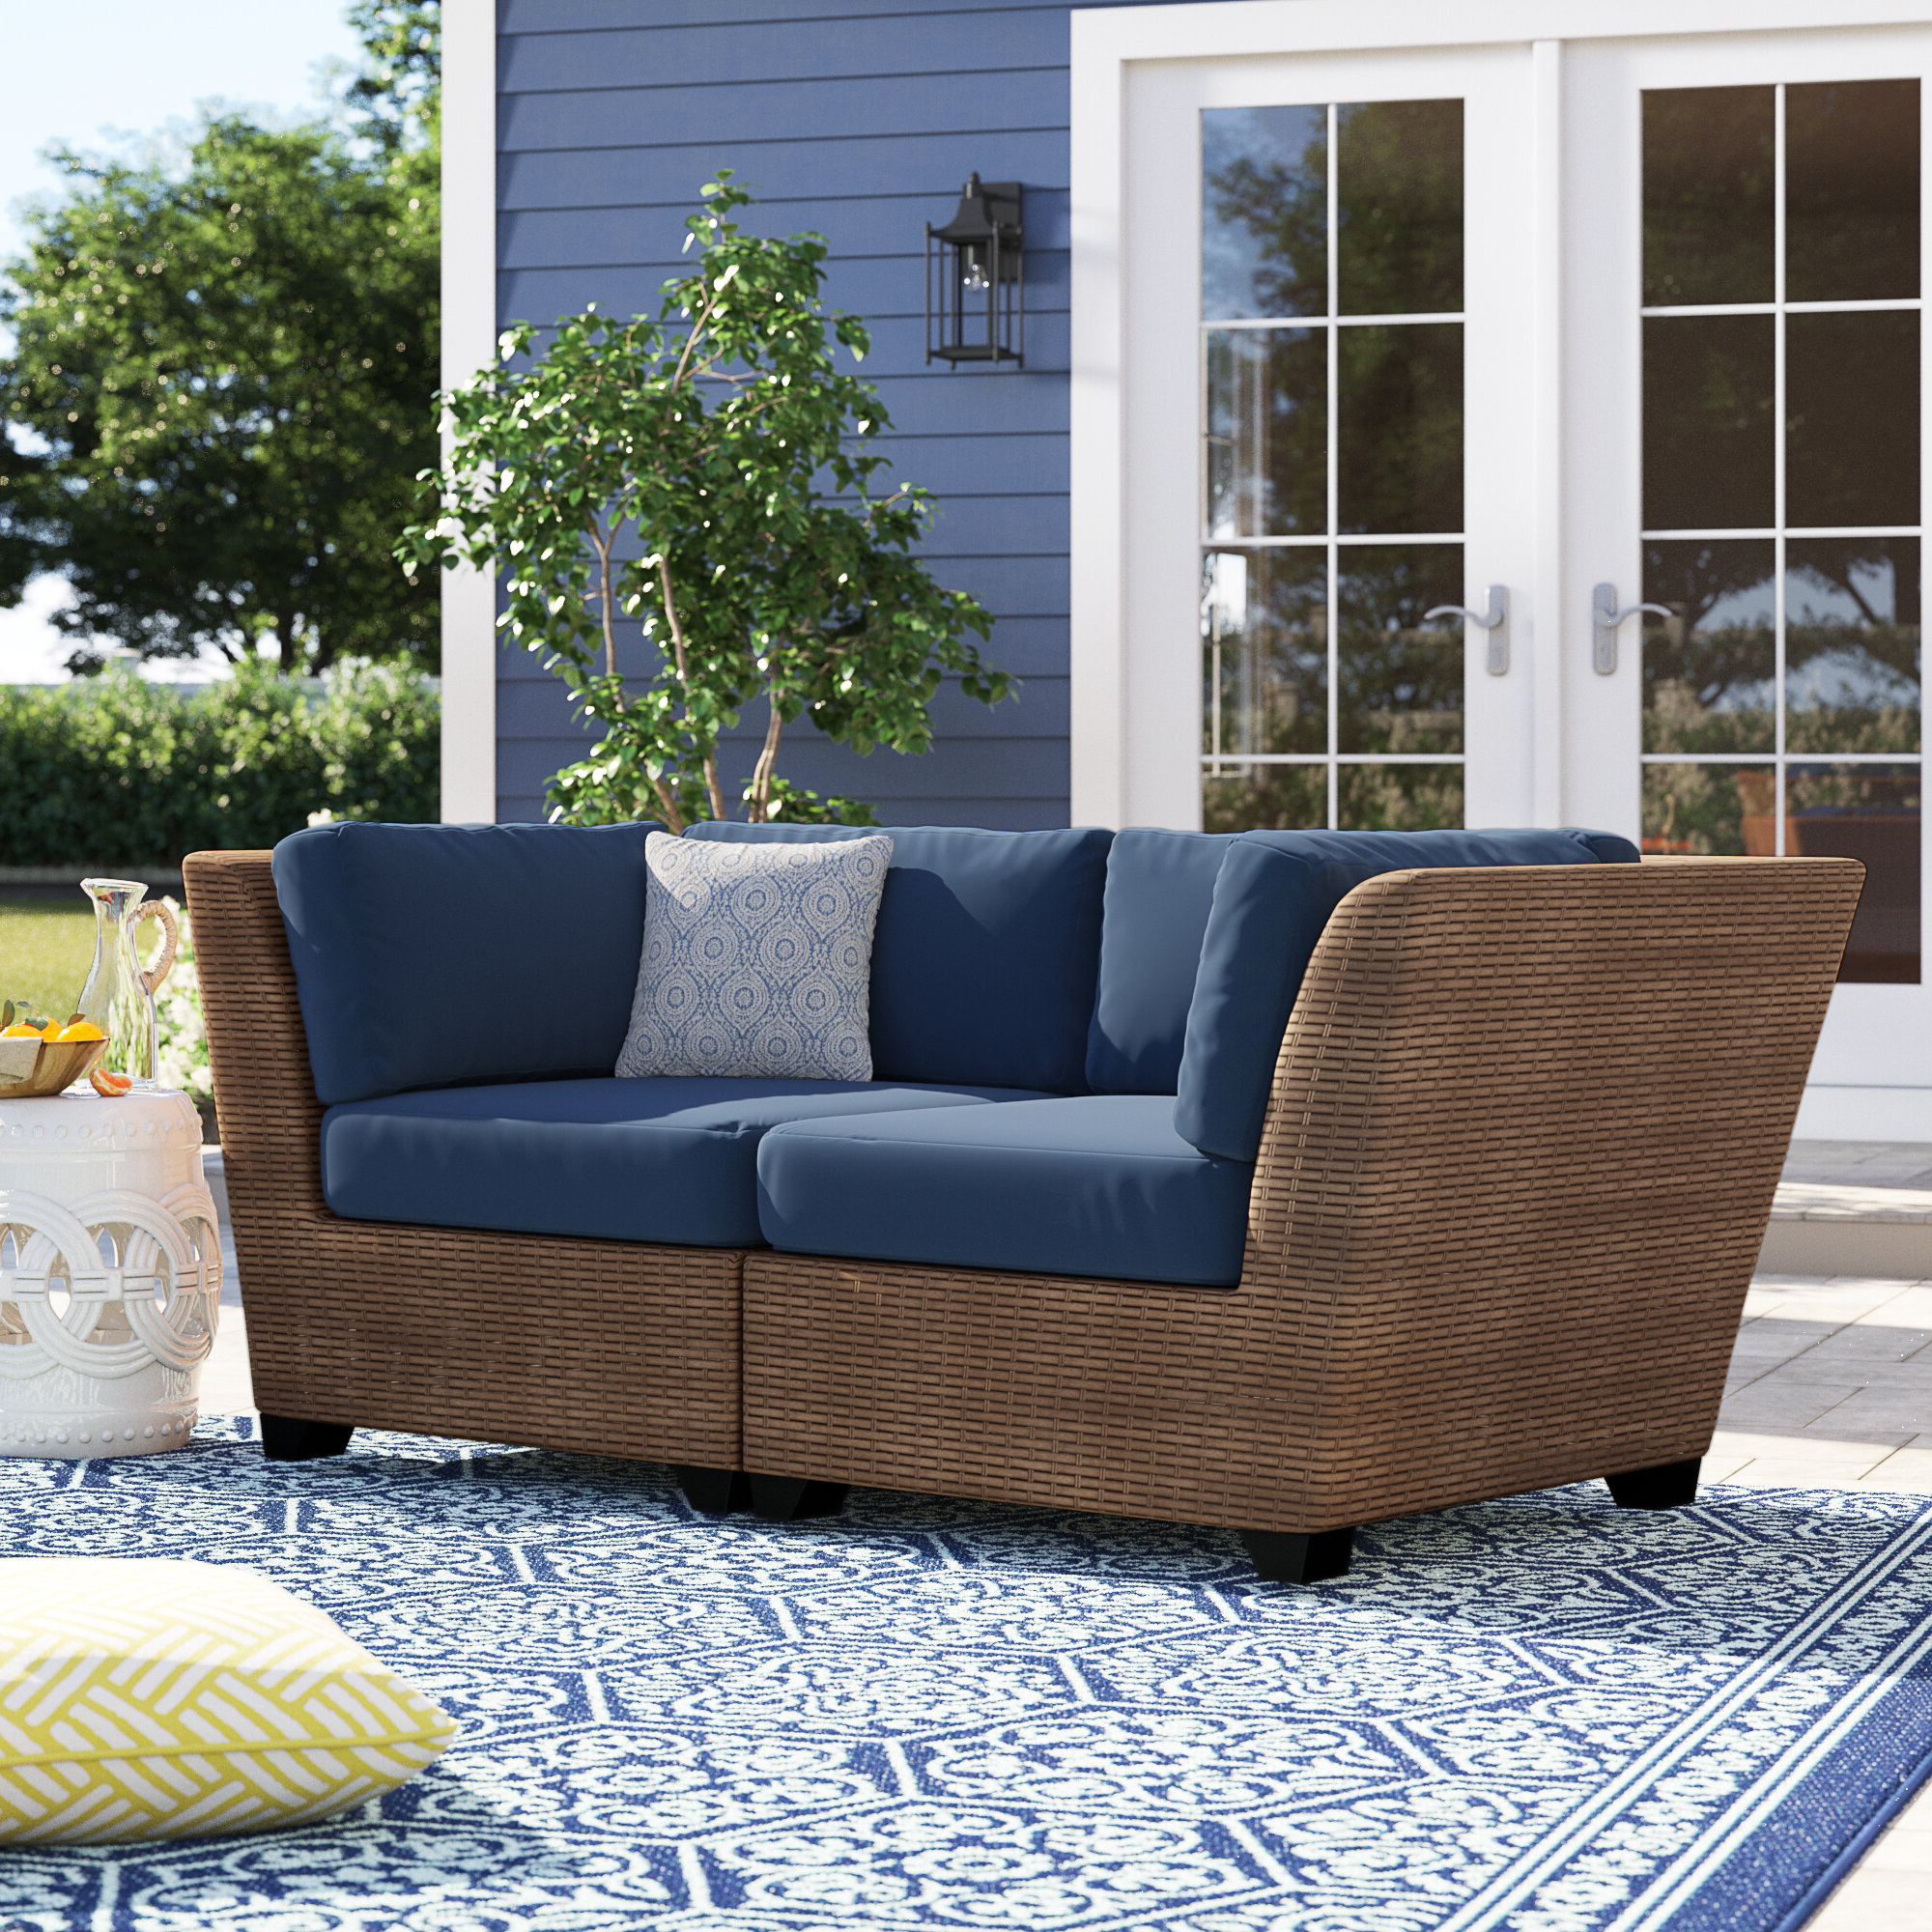 Most Recent Waterbury Patio Sectional With Cushions Regarding Waterbury Patio Sectionals With Cushions (View 4 of 25)